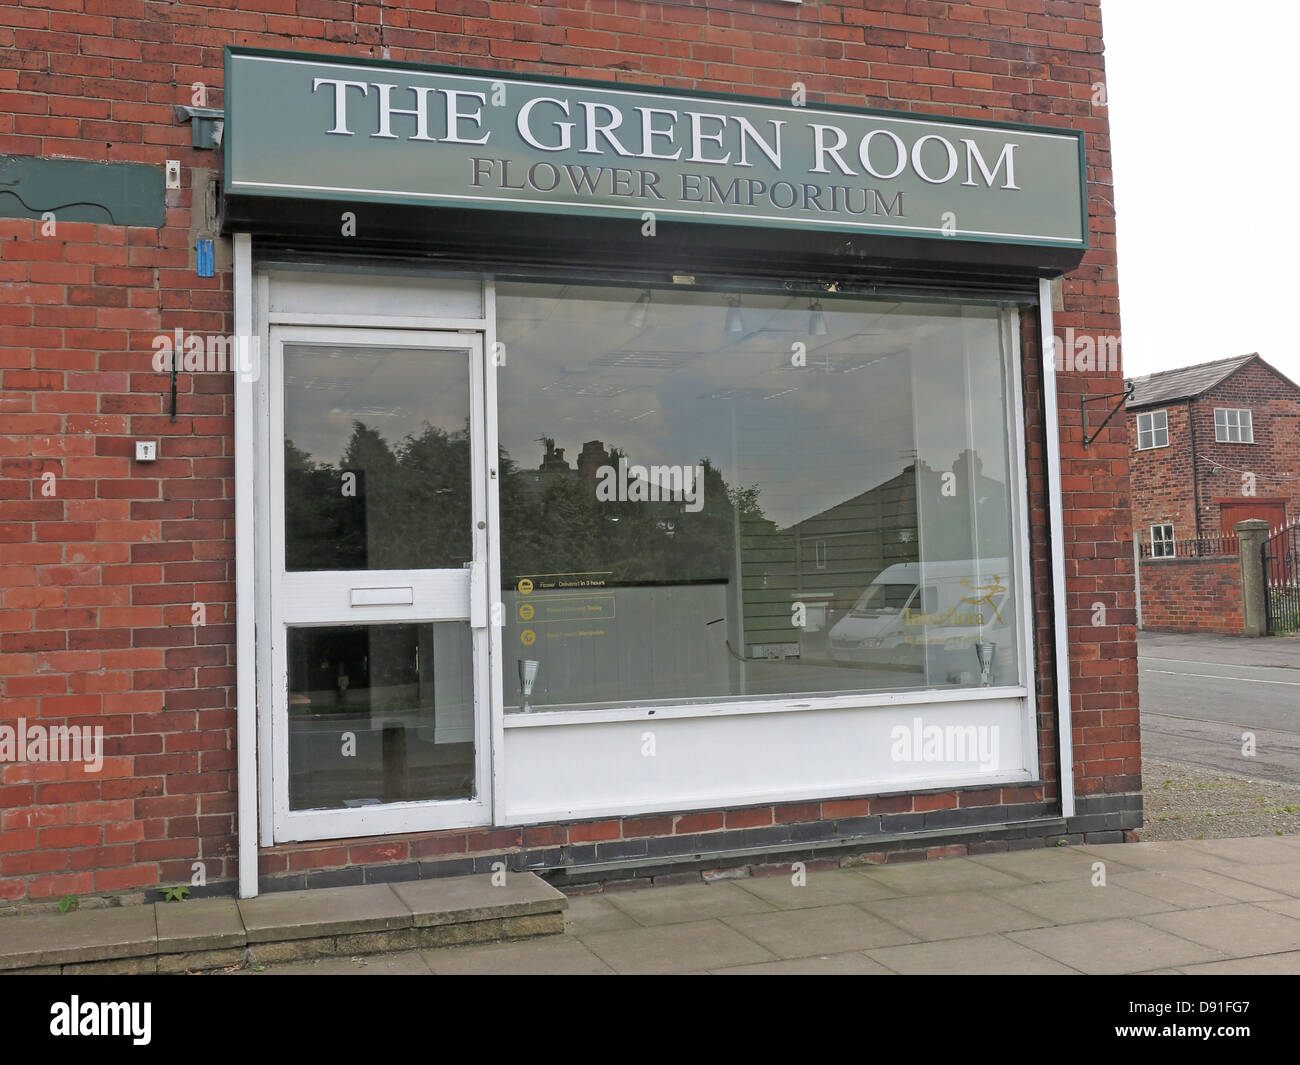 The Green Room Flower Shop Knutsford Rd Road,Grappenhall,another,business,closed,due,to,recession,closure,poor,economy,old,emporium,cheshire,England,NW,North,West,gotonysmith,corner,independent,store,suffering,austerity,going,bust,bankrupt,gotonysmith,Buy Pictures of,Buy Images Of